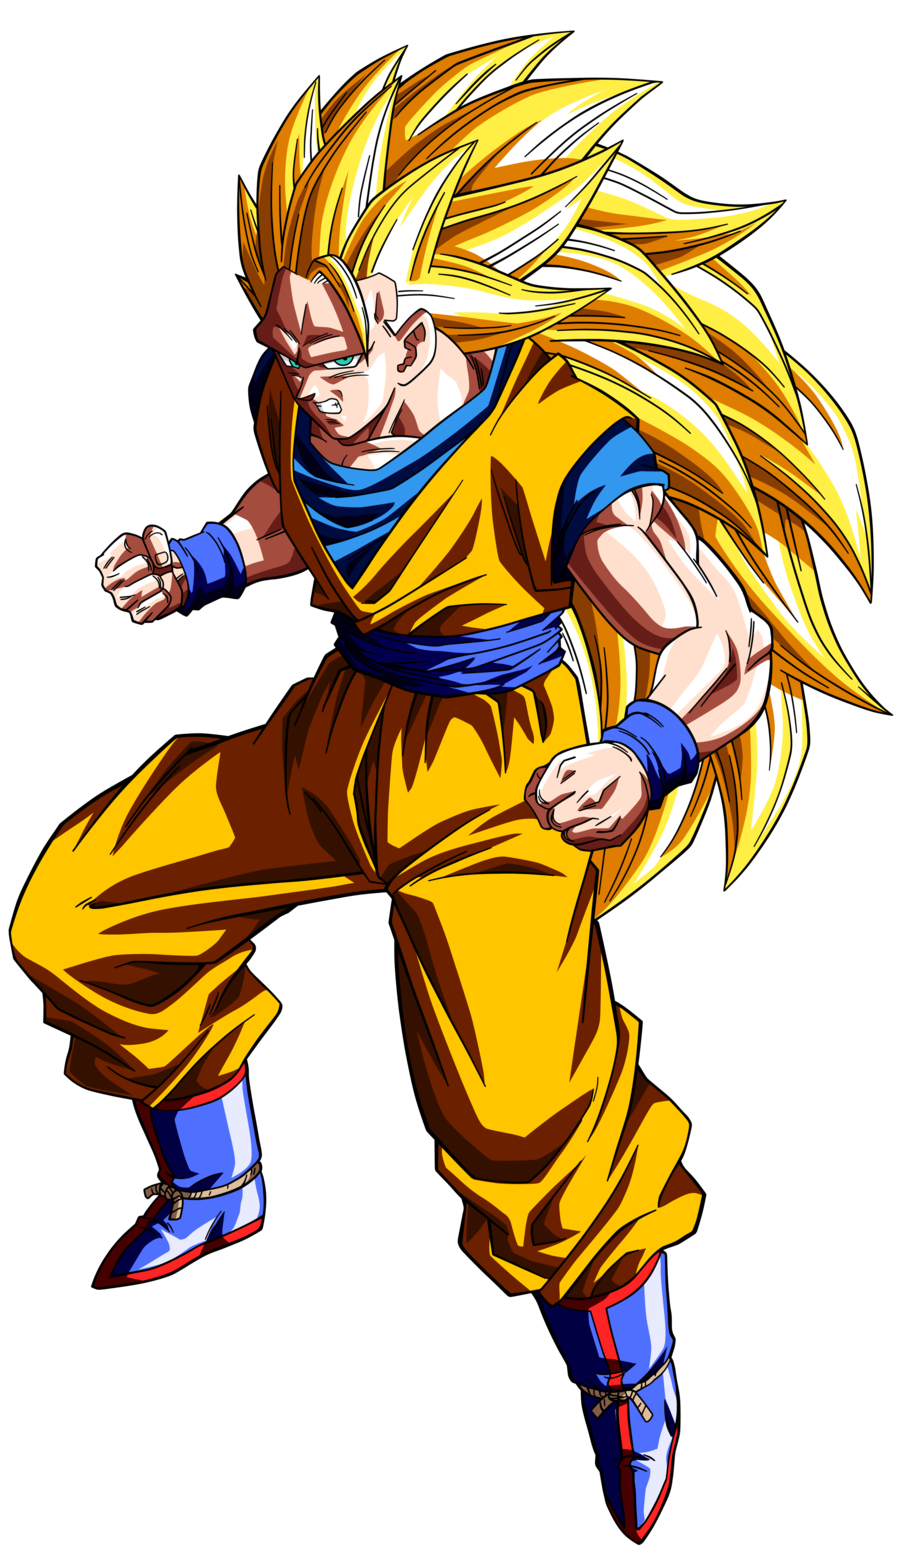 Super saiyan 3 goku png. Wiki dragon ball fandom